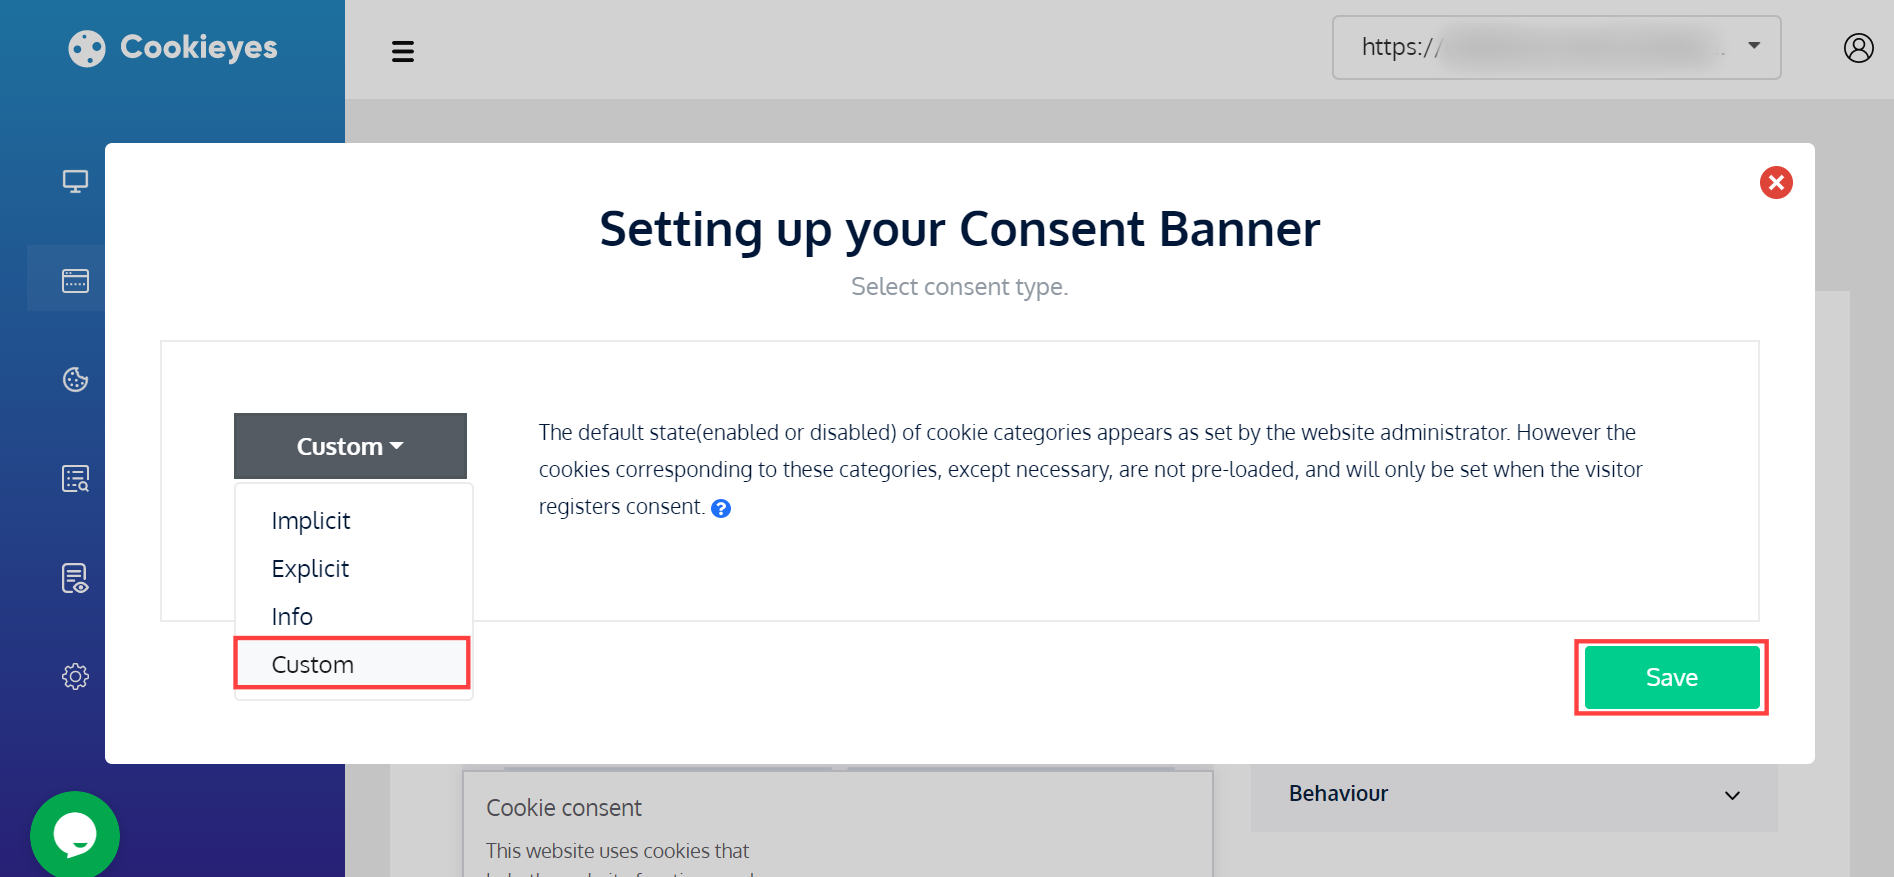 CookieYes - Setting up custom consent banner